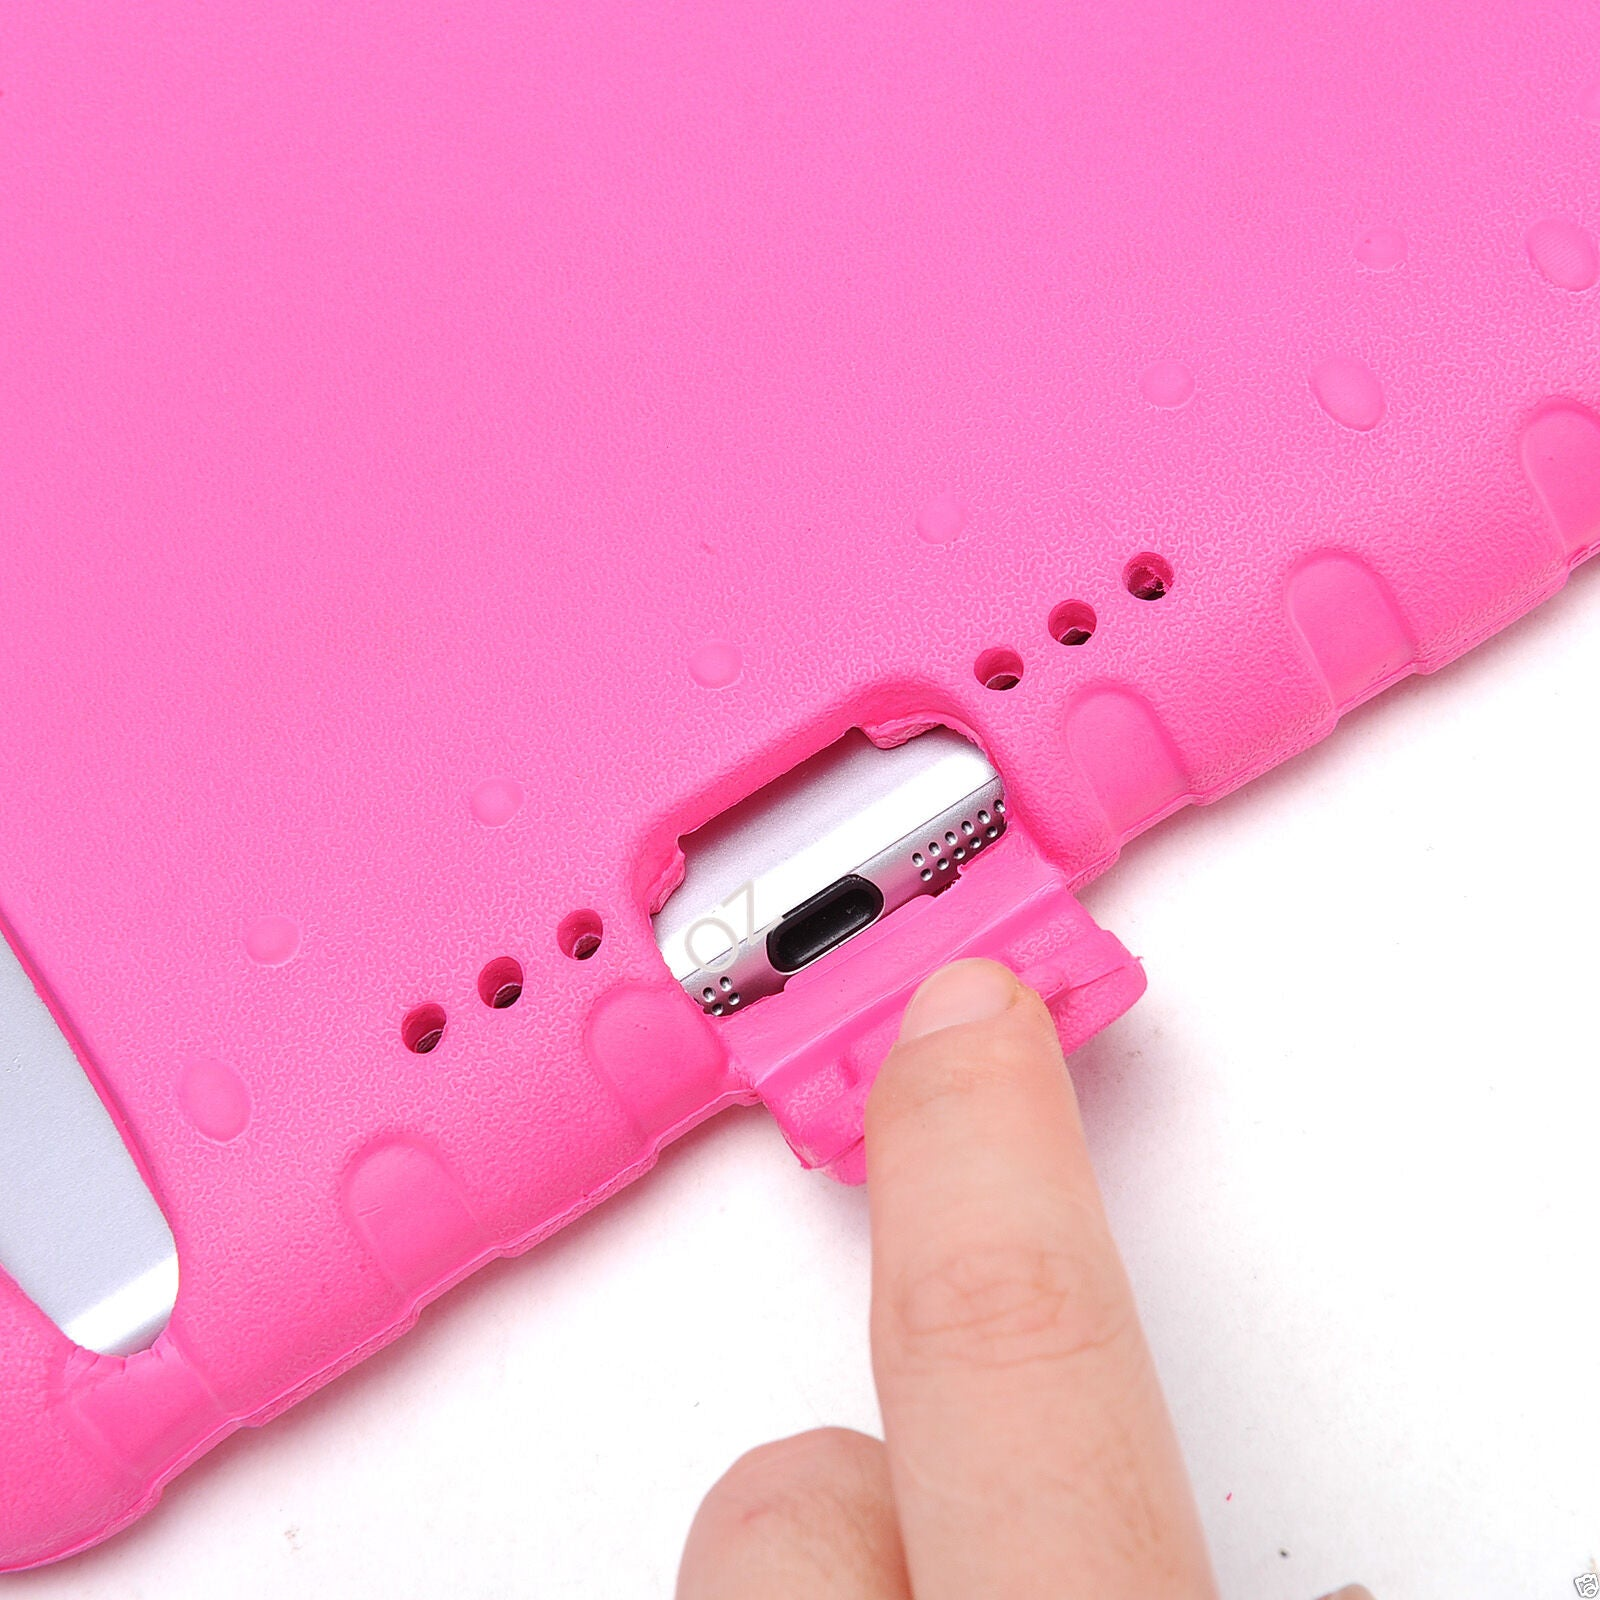 Heavy Duty Shock Proof Kids Case Cover for iPad Mini 4